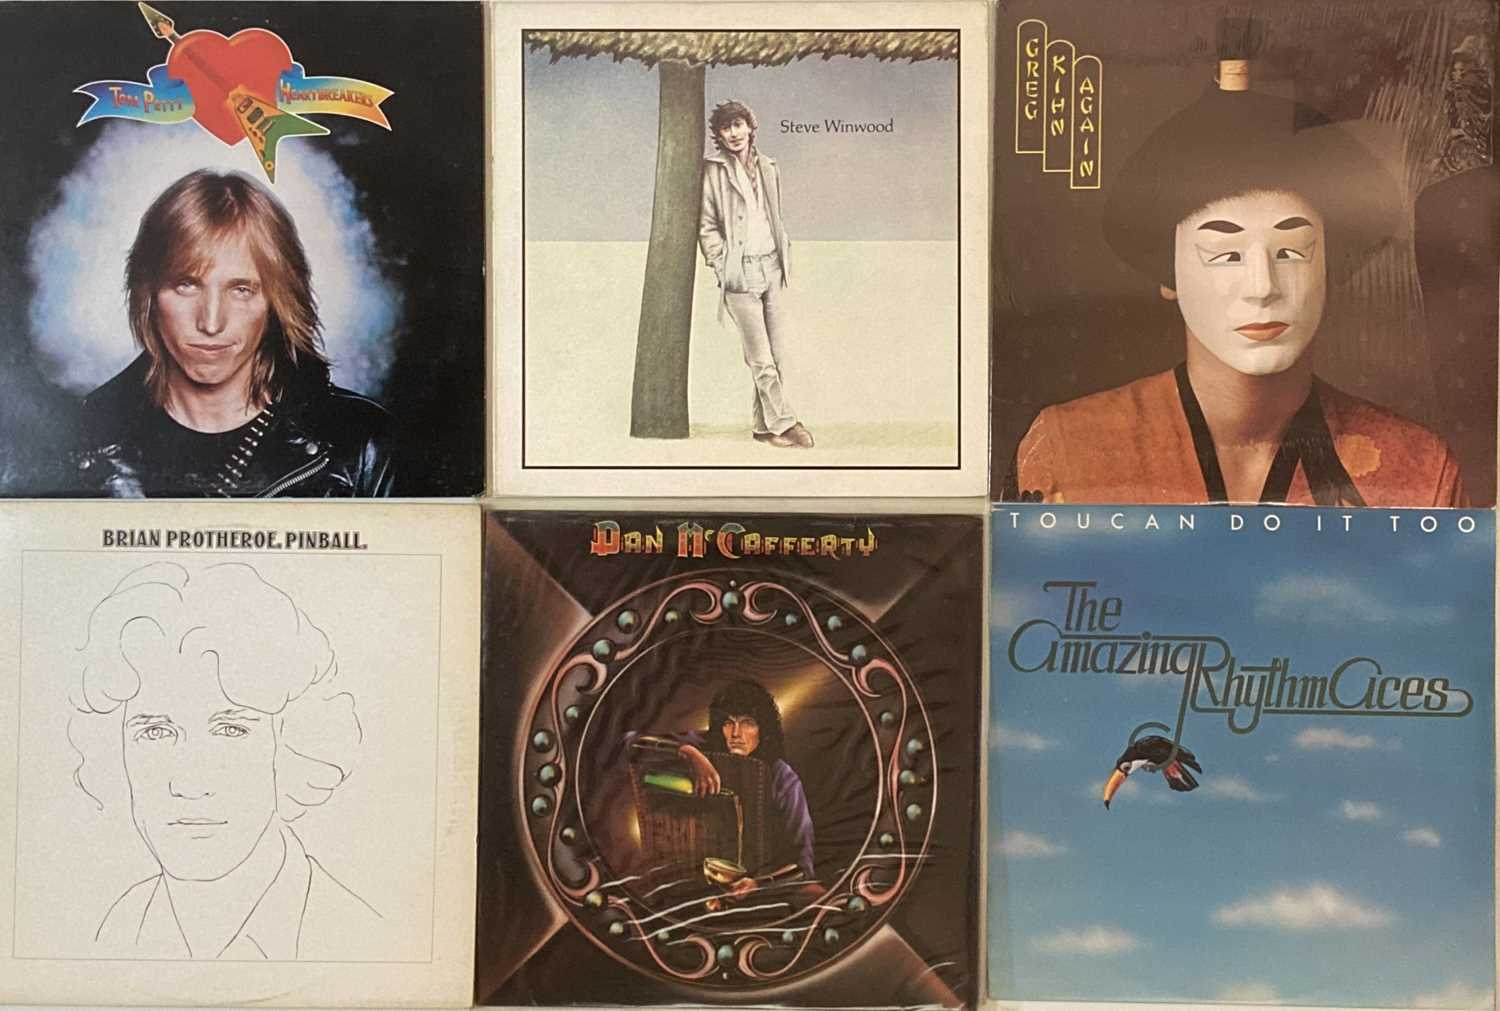 SOFT ROCK/ AOR - LPs - Image 3 of 6